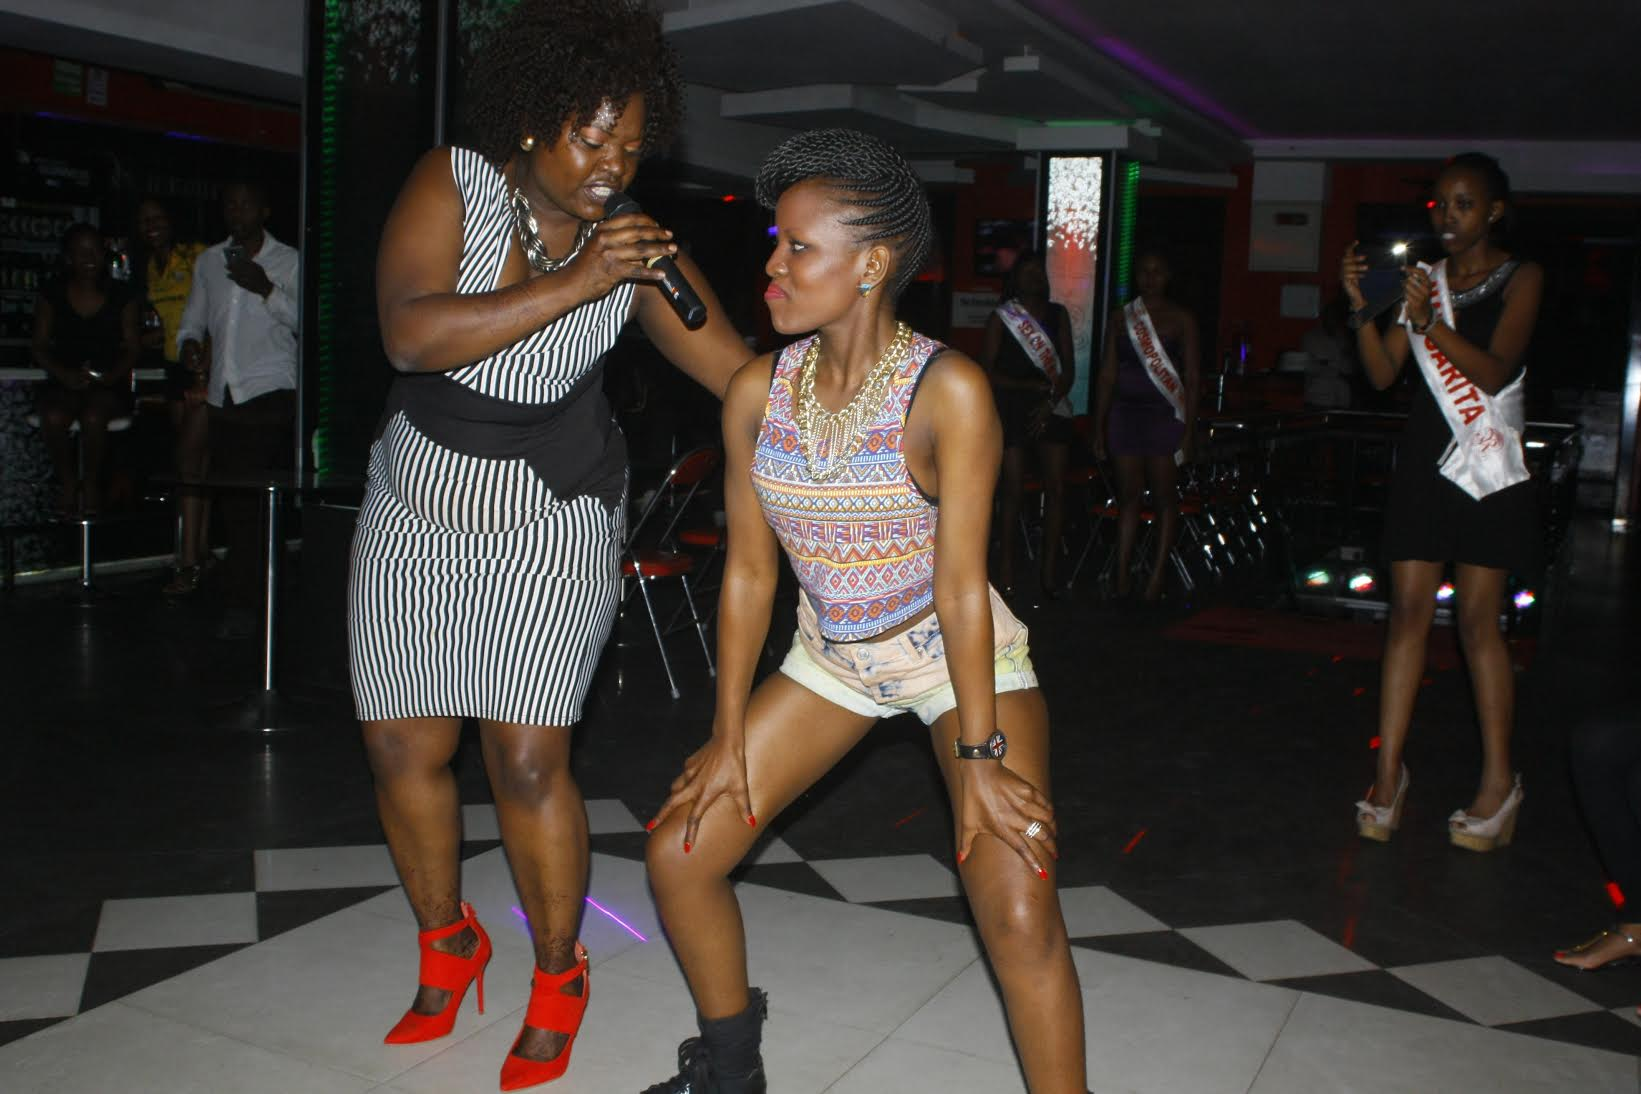 These Women Went All Ratchet Simulating Sex At A Nairobi Club On Sunday Night Photos -3346